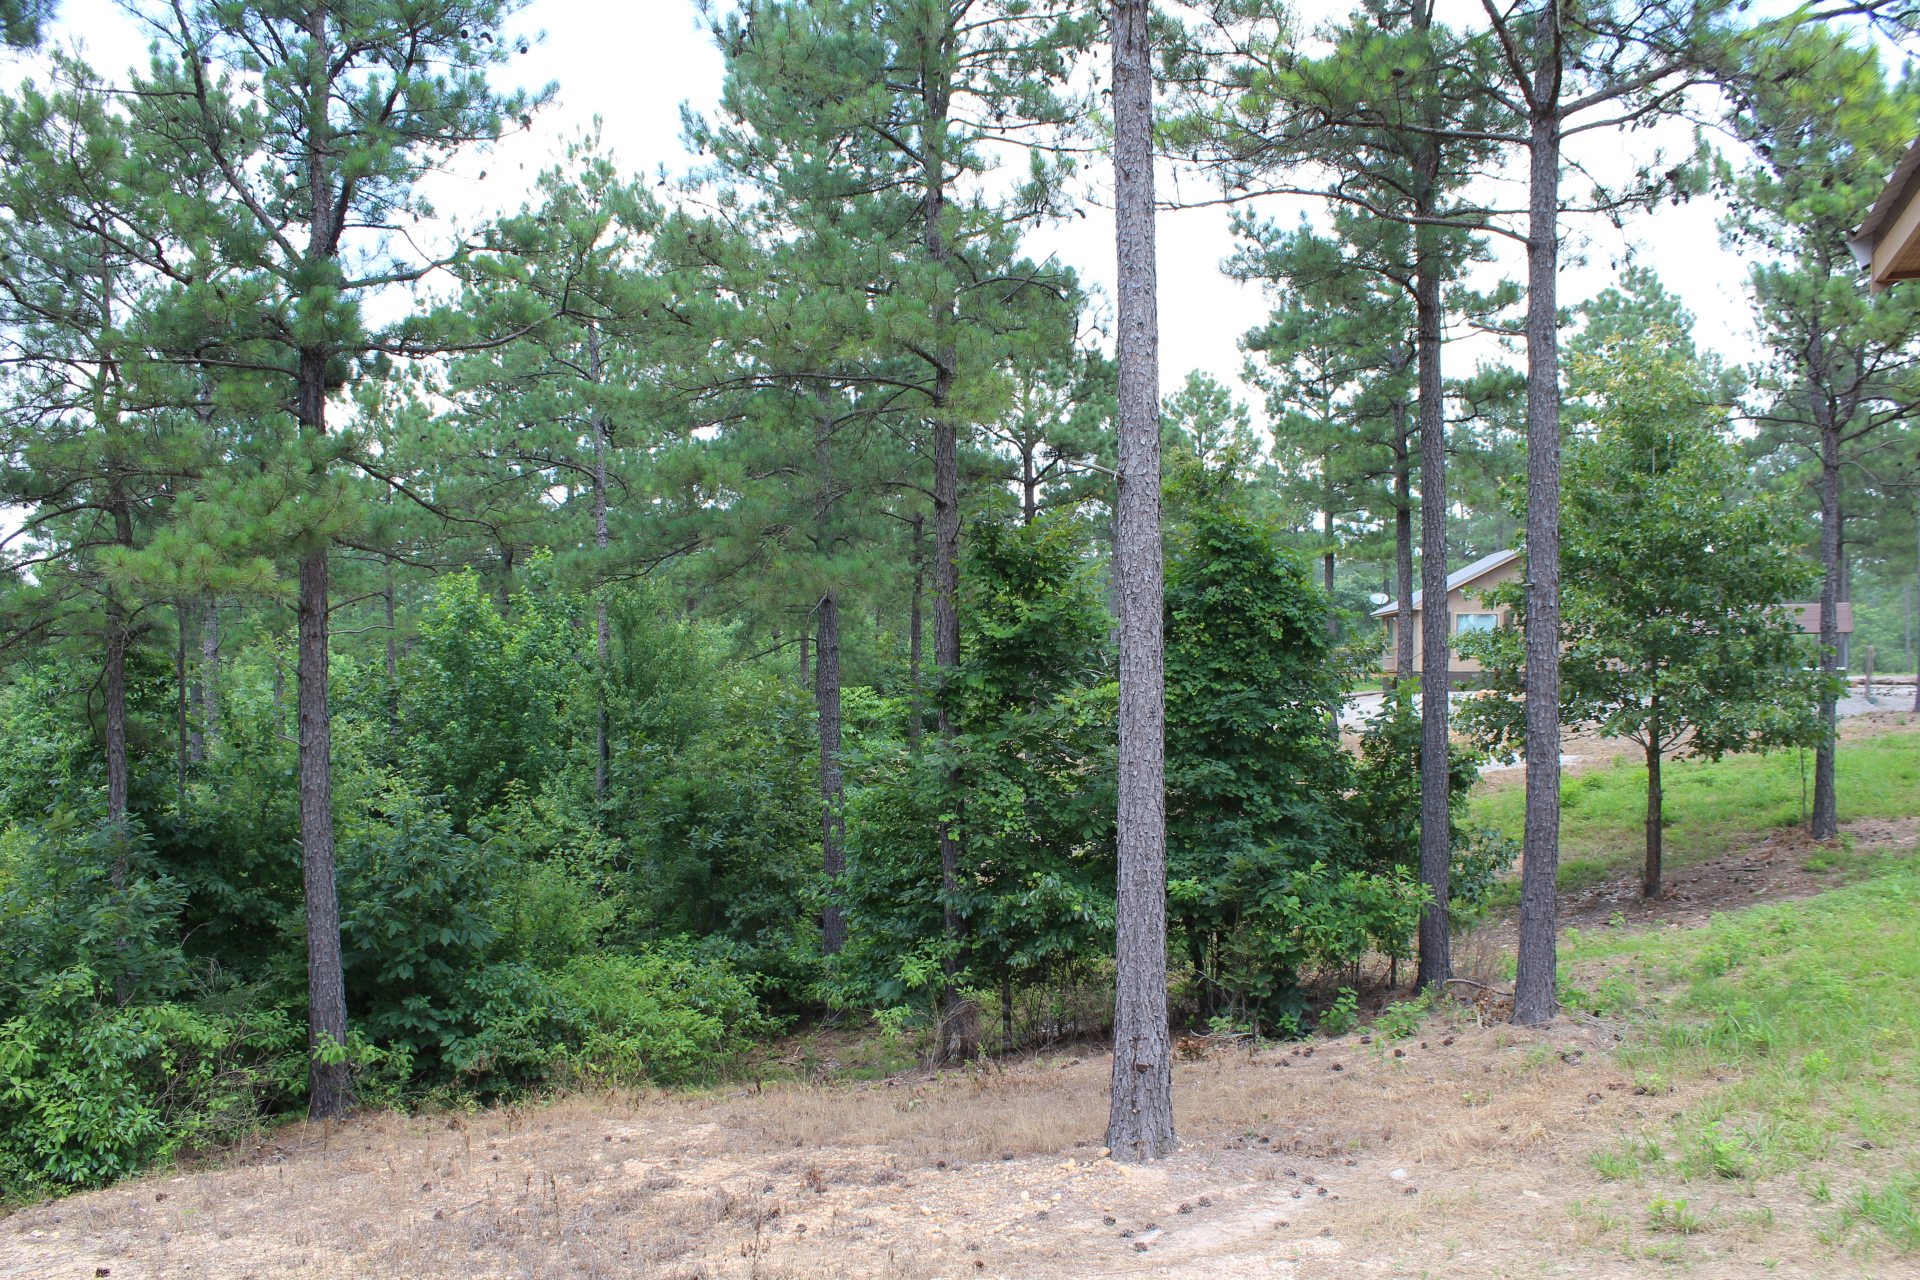 View of Cabin 1 from Cabin 2